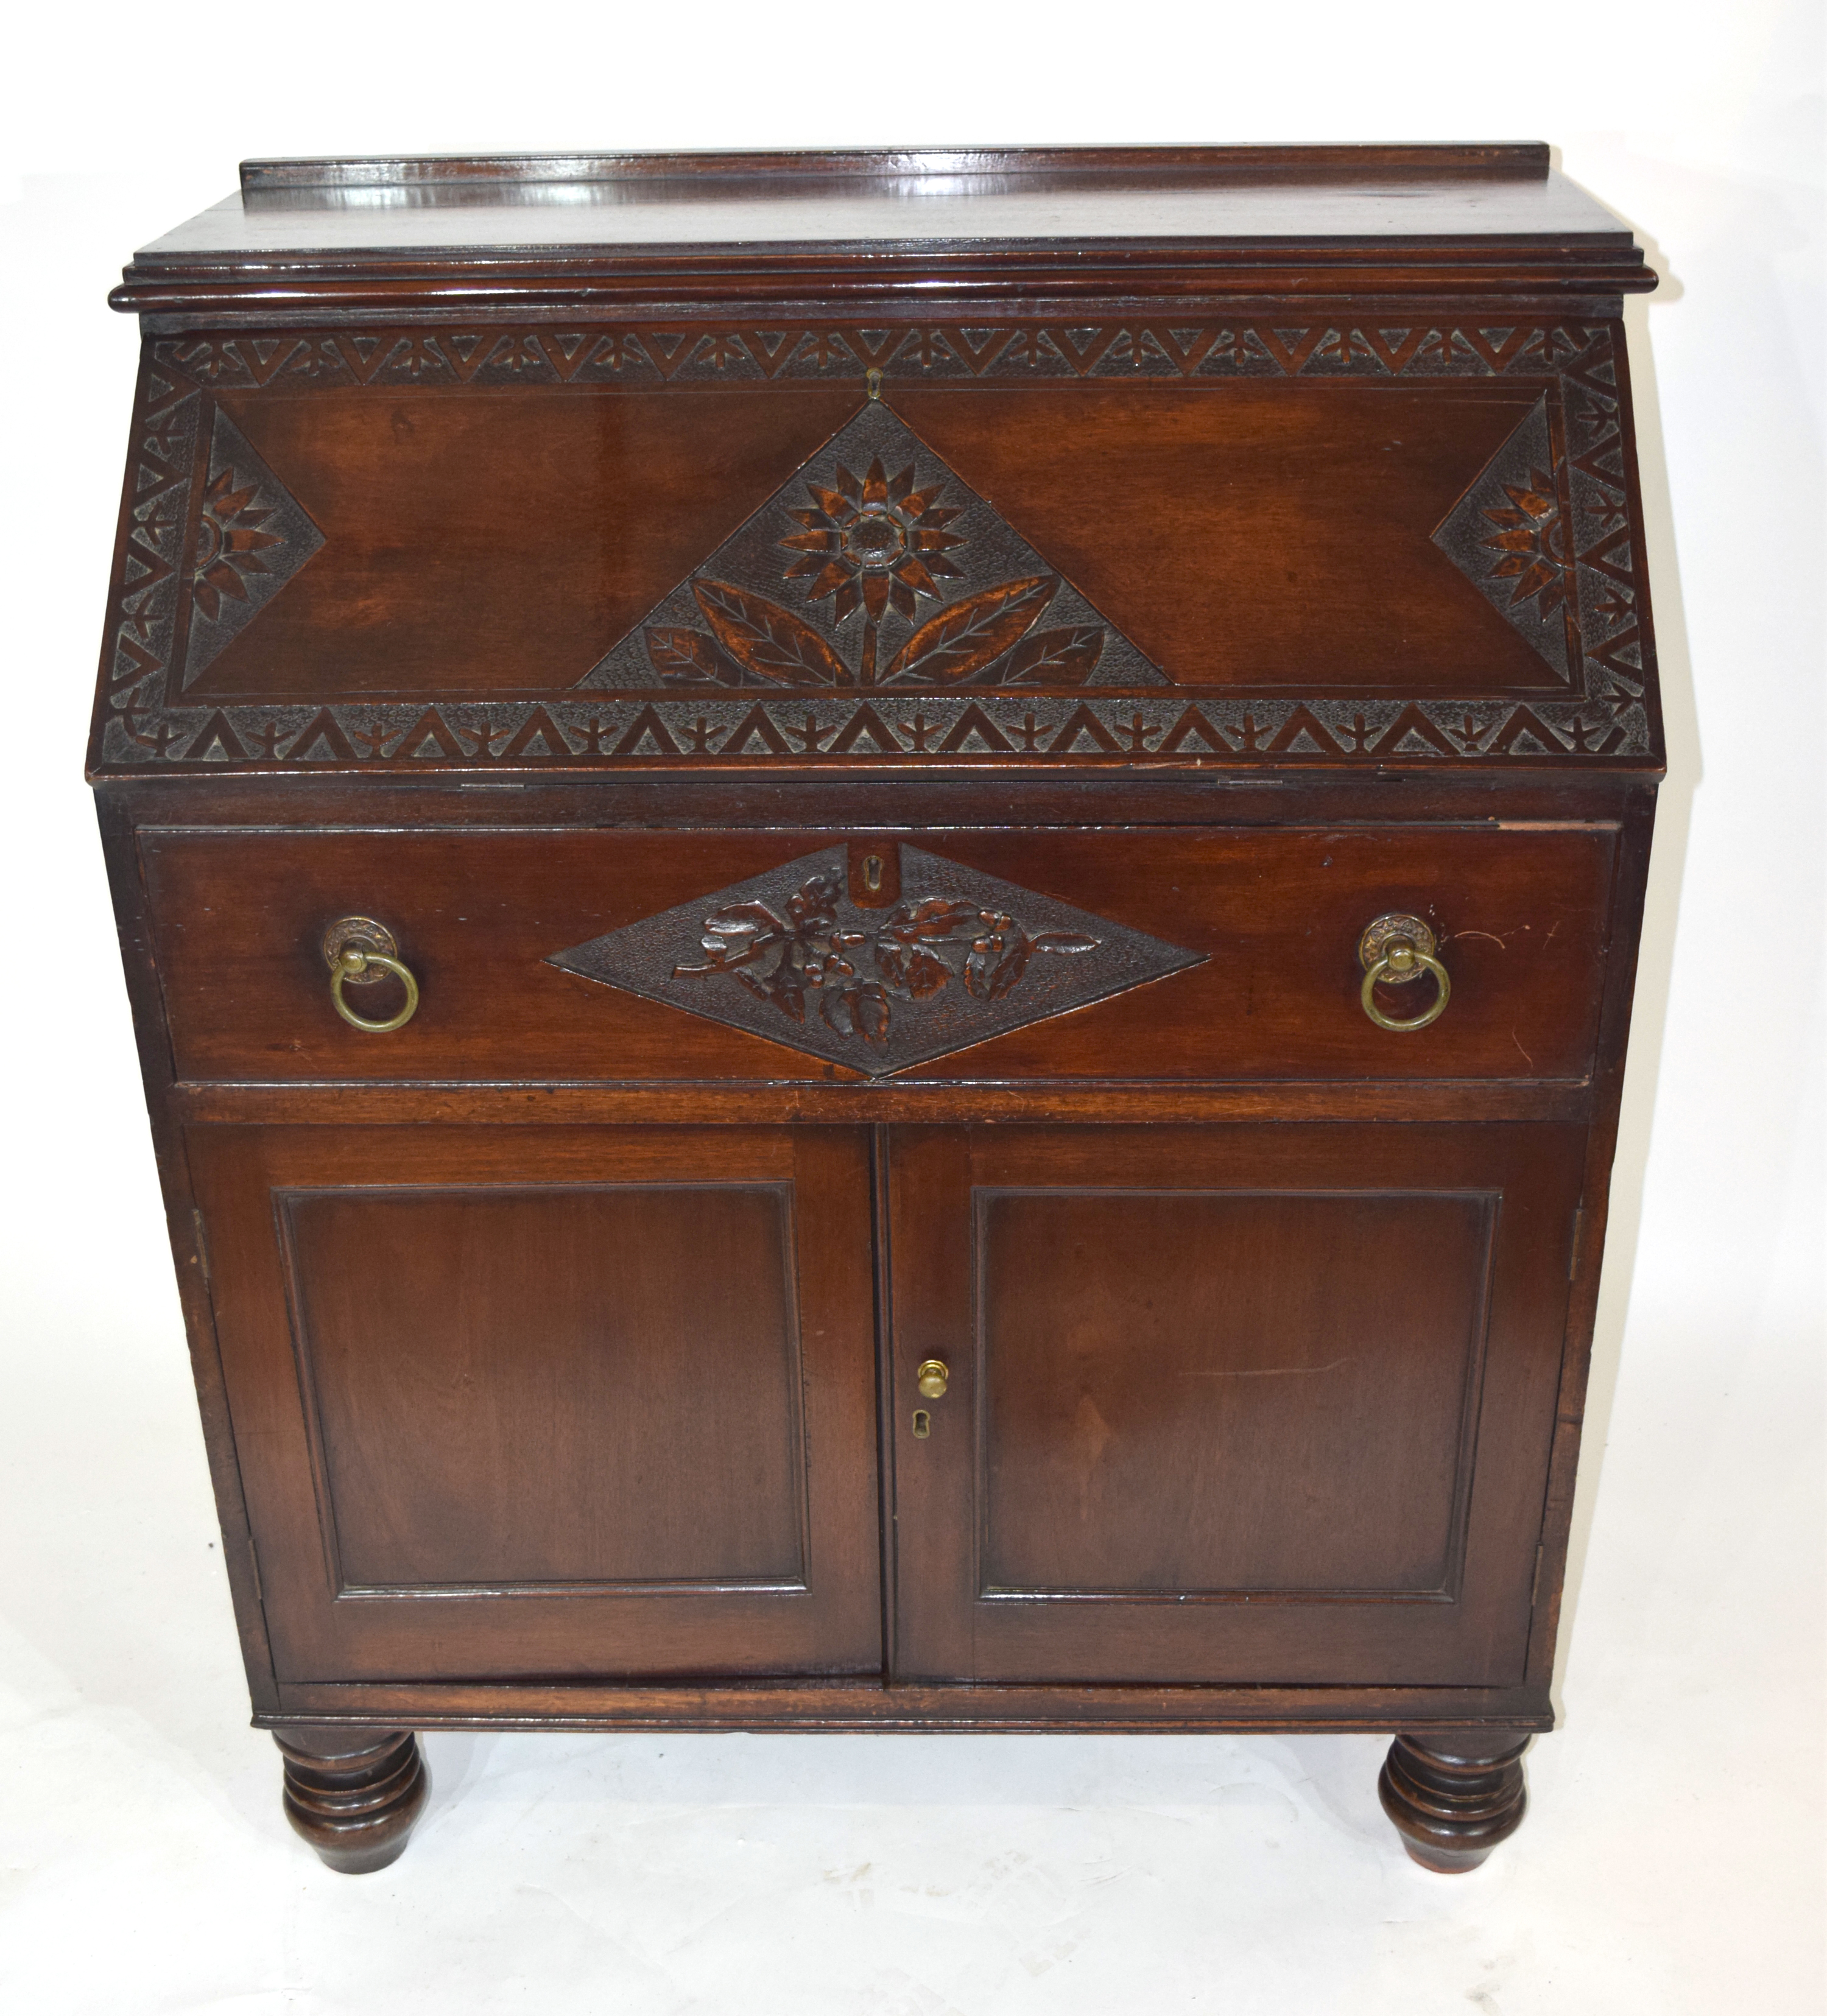 Late 19th/Early 20th century mahogany bureau with full front decorated with carved floral detail